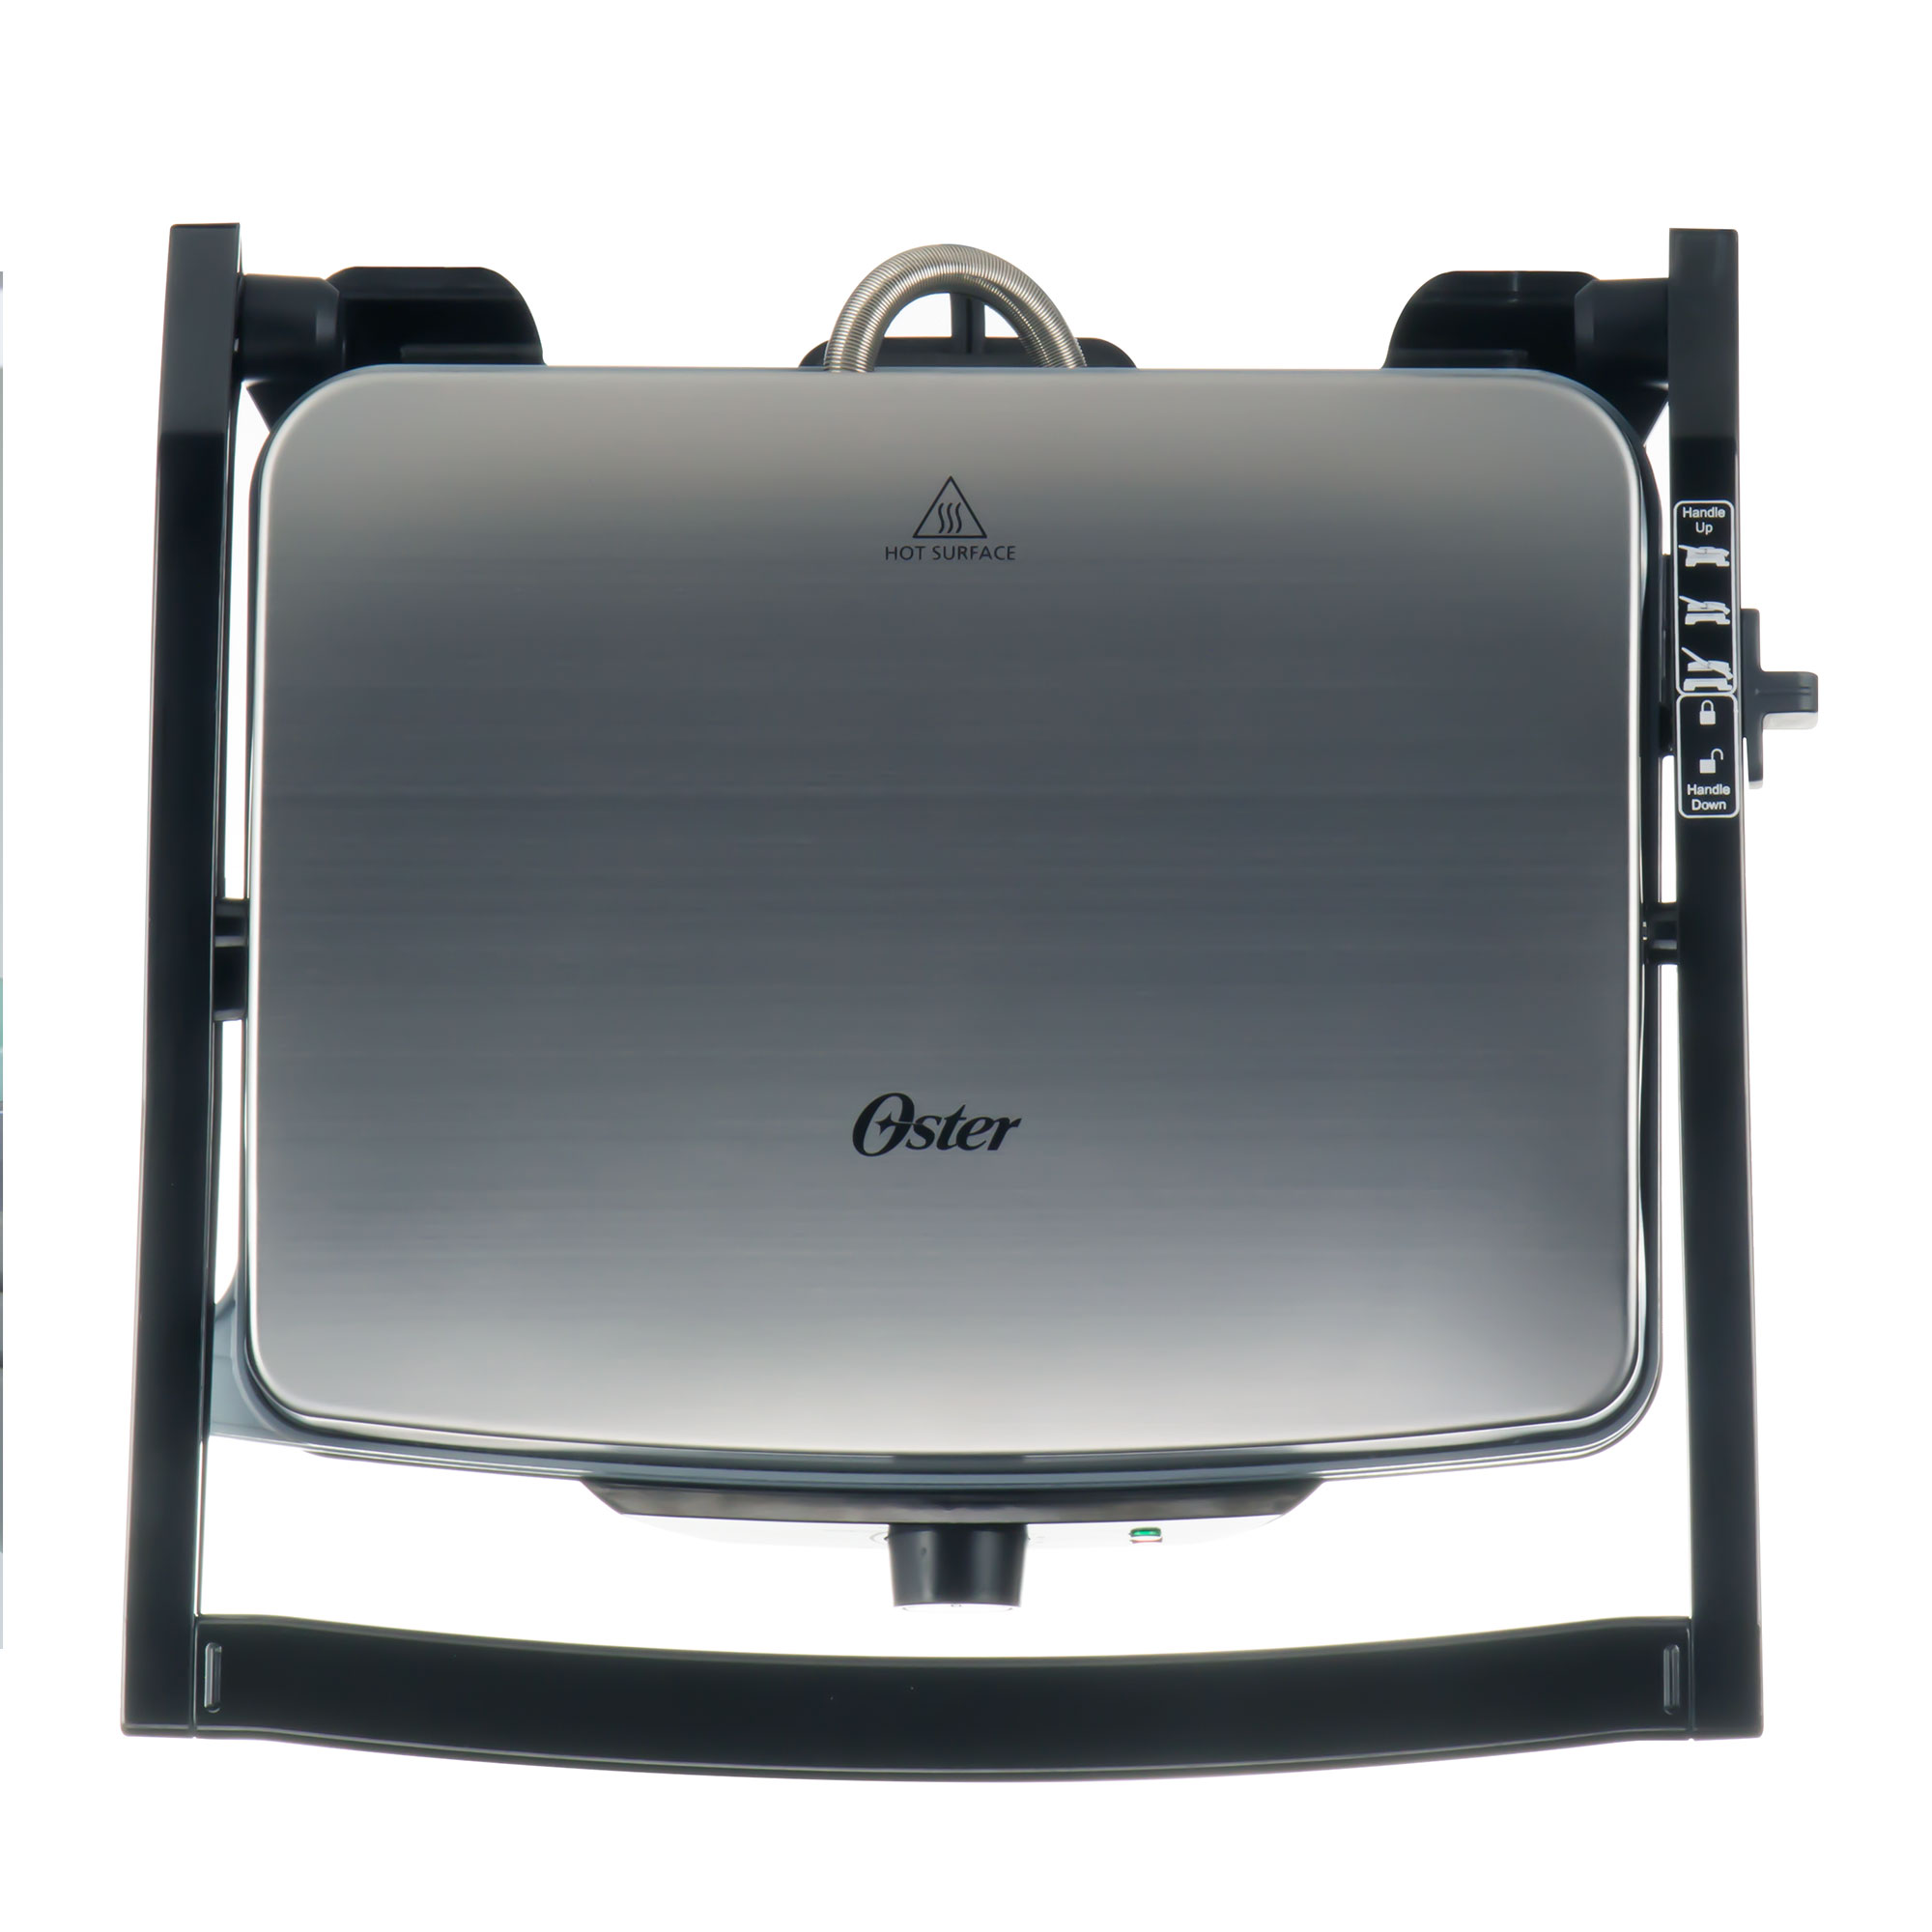 Oster 3-in-1 Panini Maker | Indoor Grill | Grill, Black